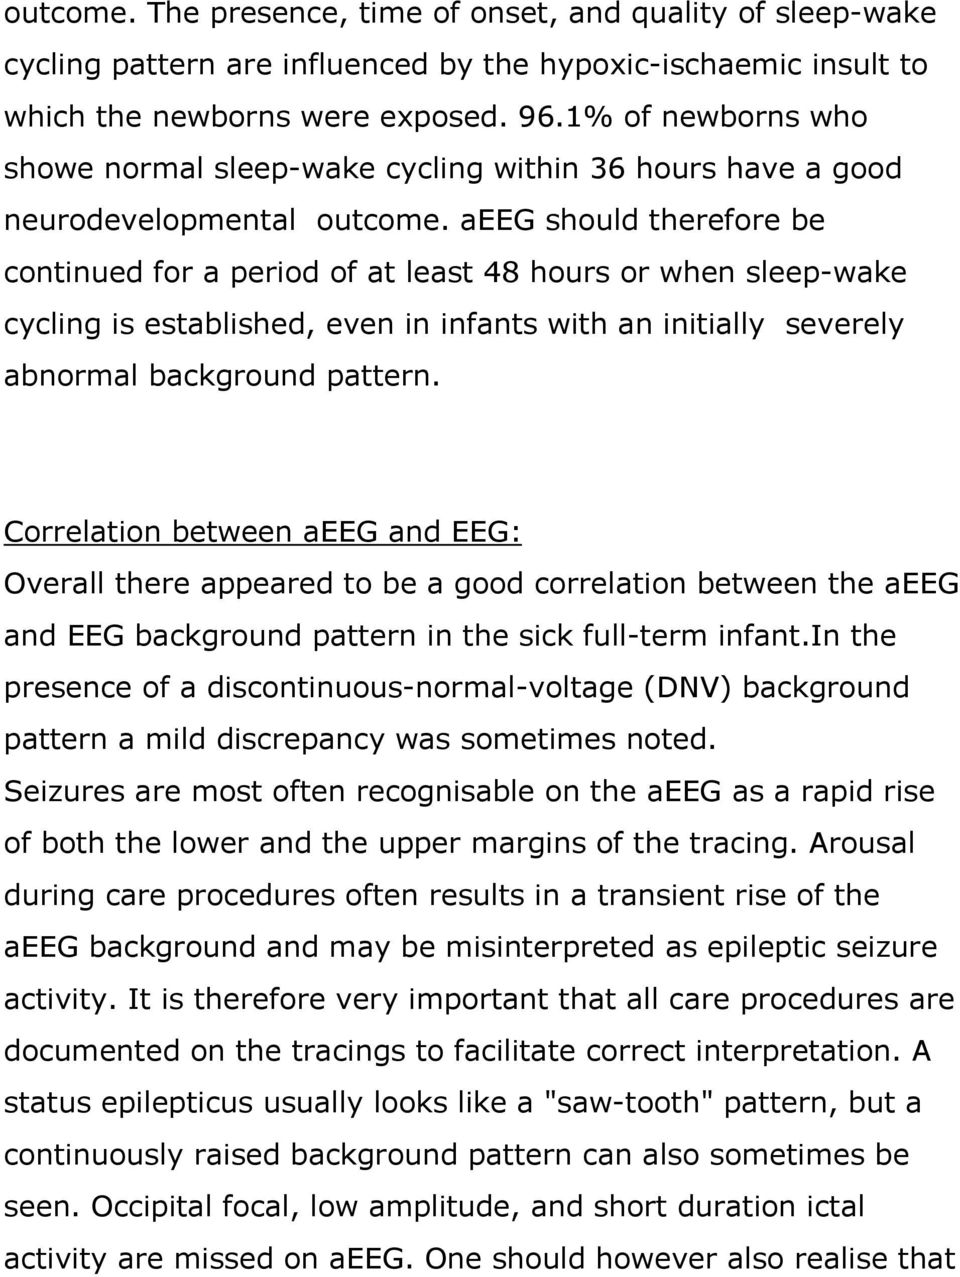 aeeg should therefore be continued for a period of at least 48 hours or when sleep-wake cycling is established, even in infants with an initially severely abnormal background pattern.